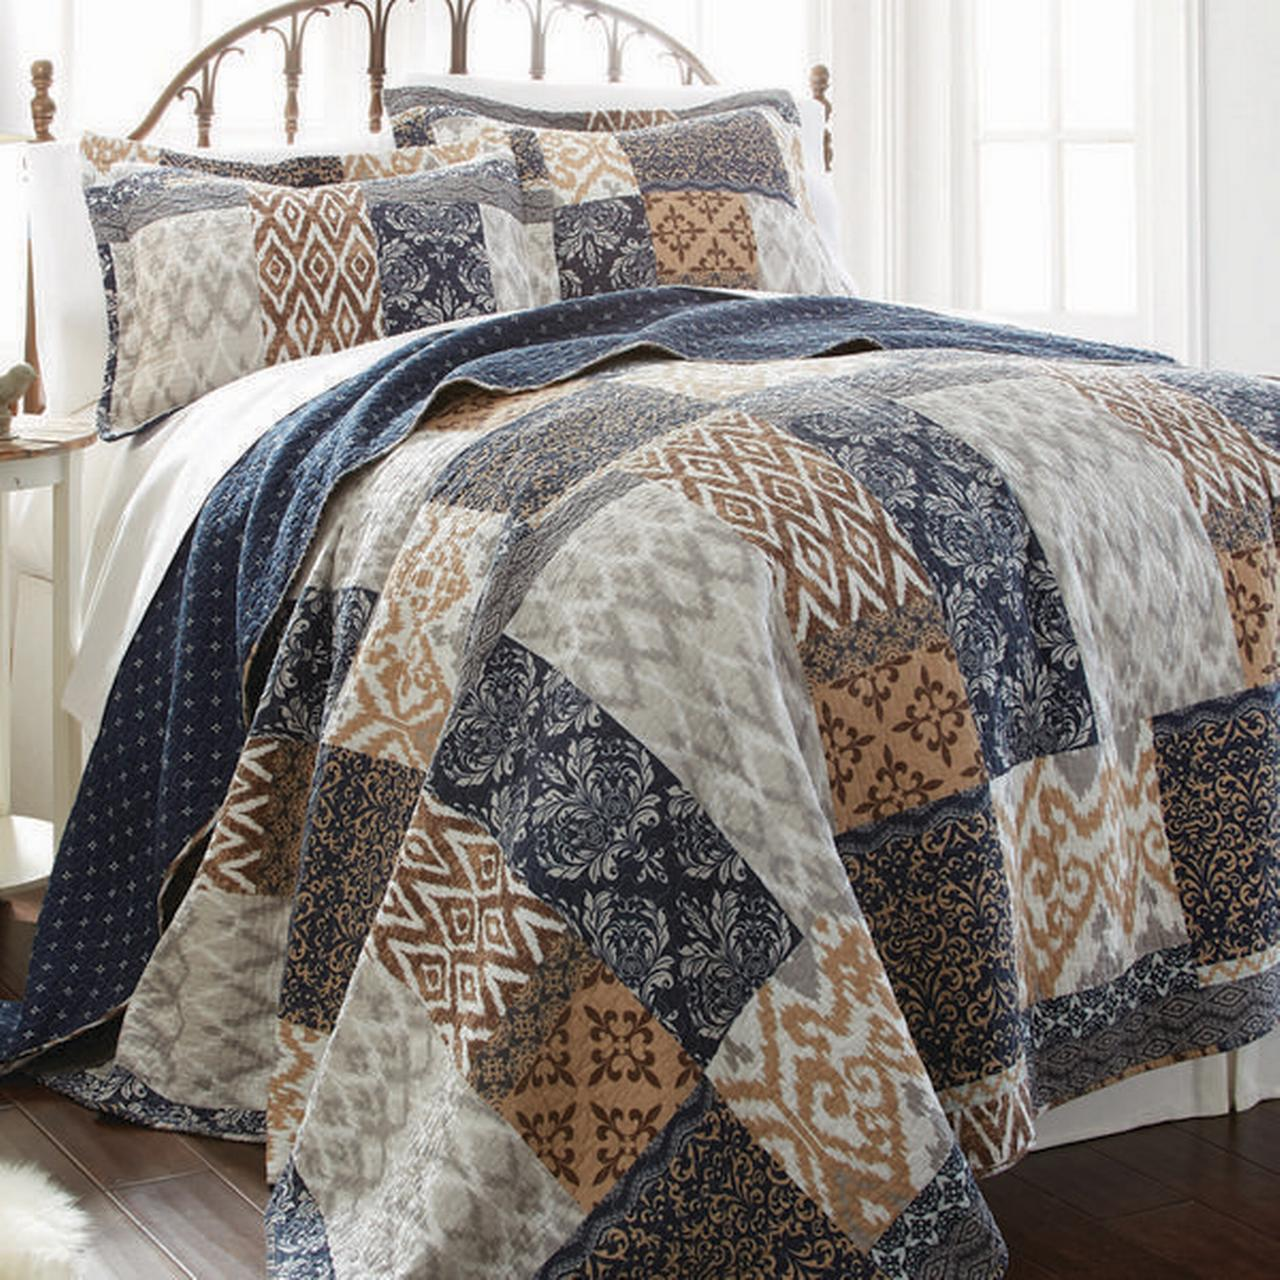 100% Cotton 3 Piece Printed Reversible Quilt Set Laura Full Queen by Amrapur Overseas, Inc.